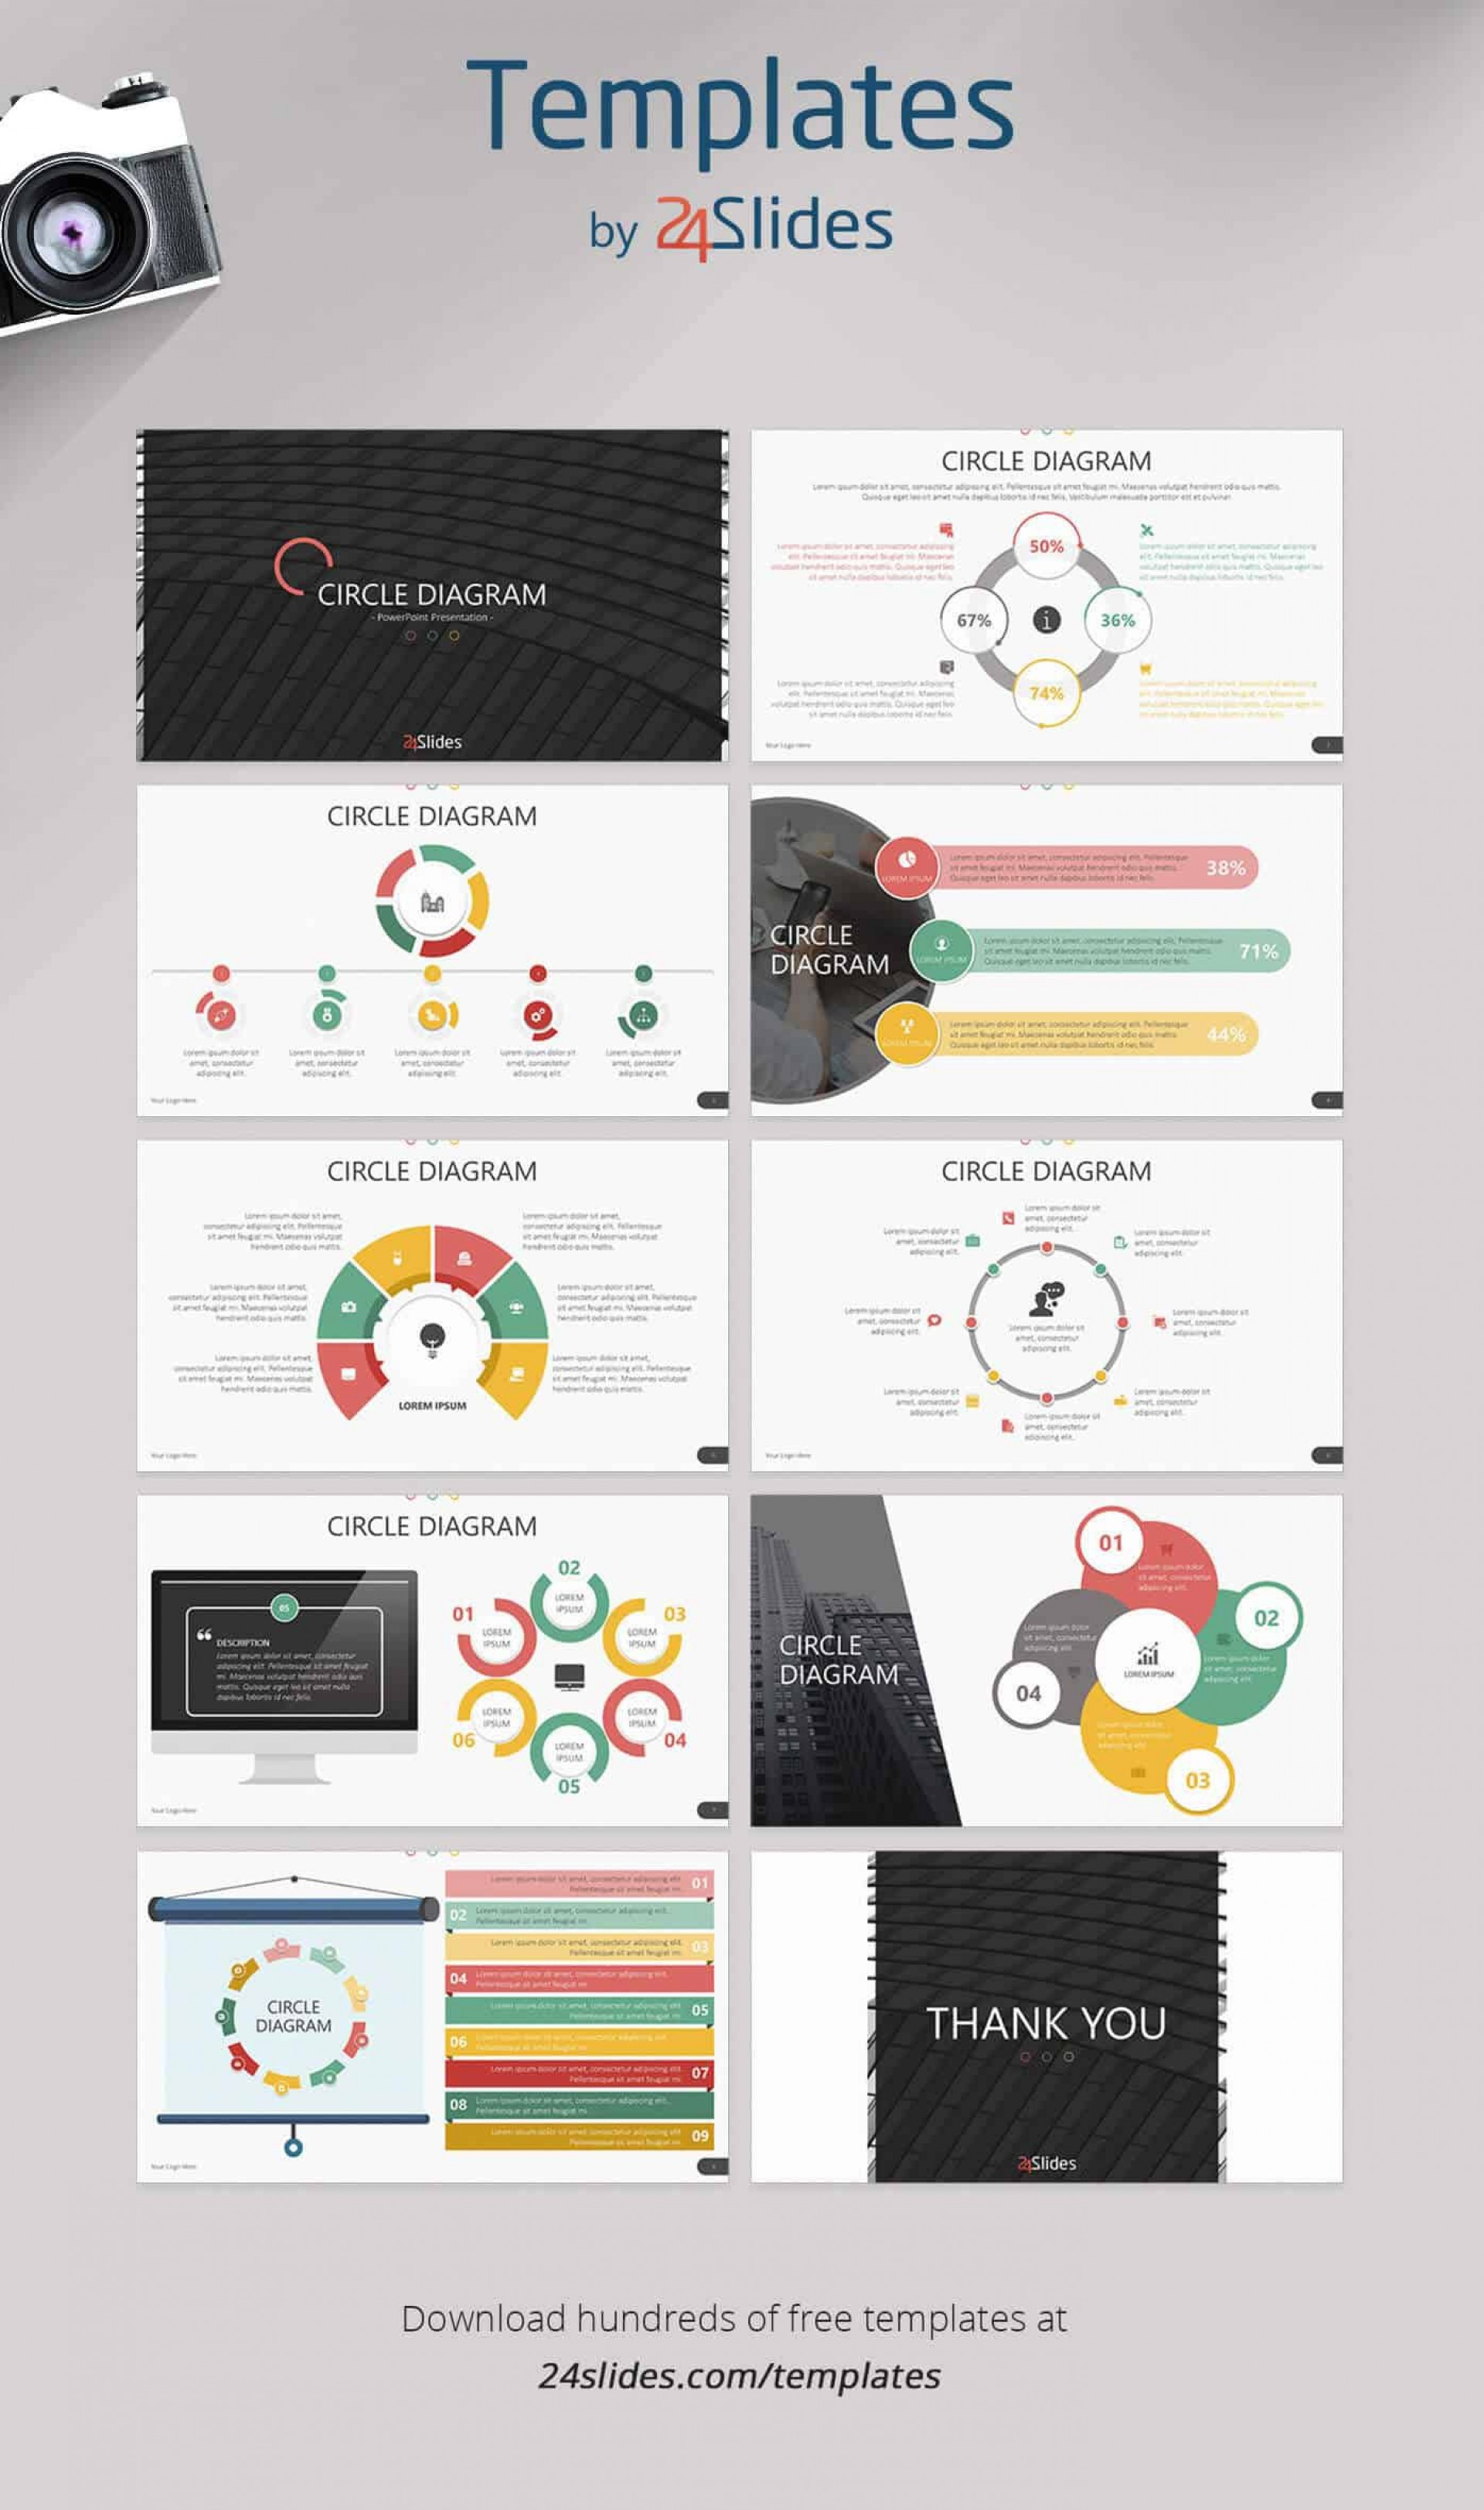 000 Impressive Free Powerpoint Presentation Template Example  Templates 22 Slide For The Perfect Busines Strategy Download Engineering1920